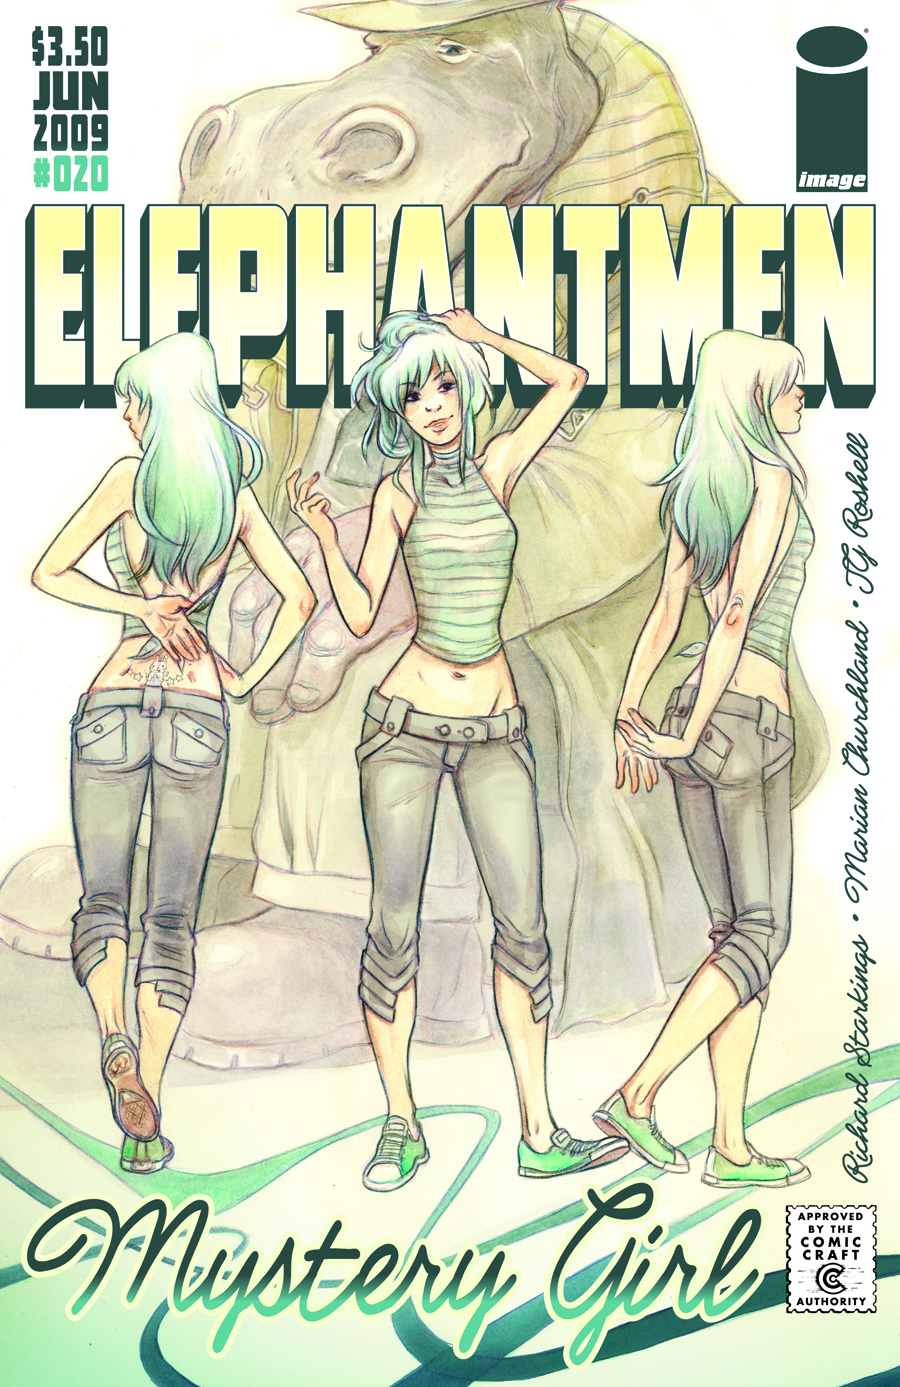 ELEPHANTMEN #20 (RES)